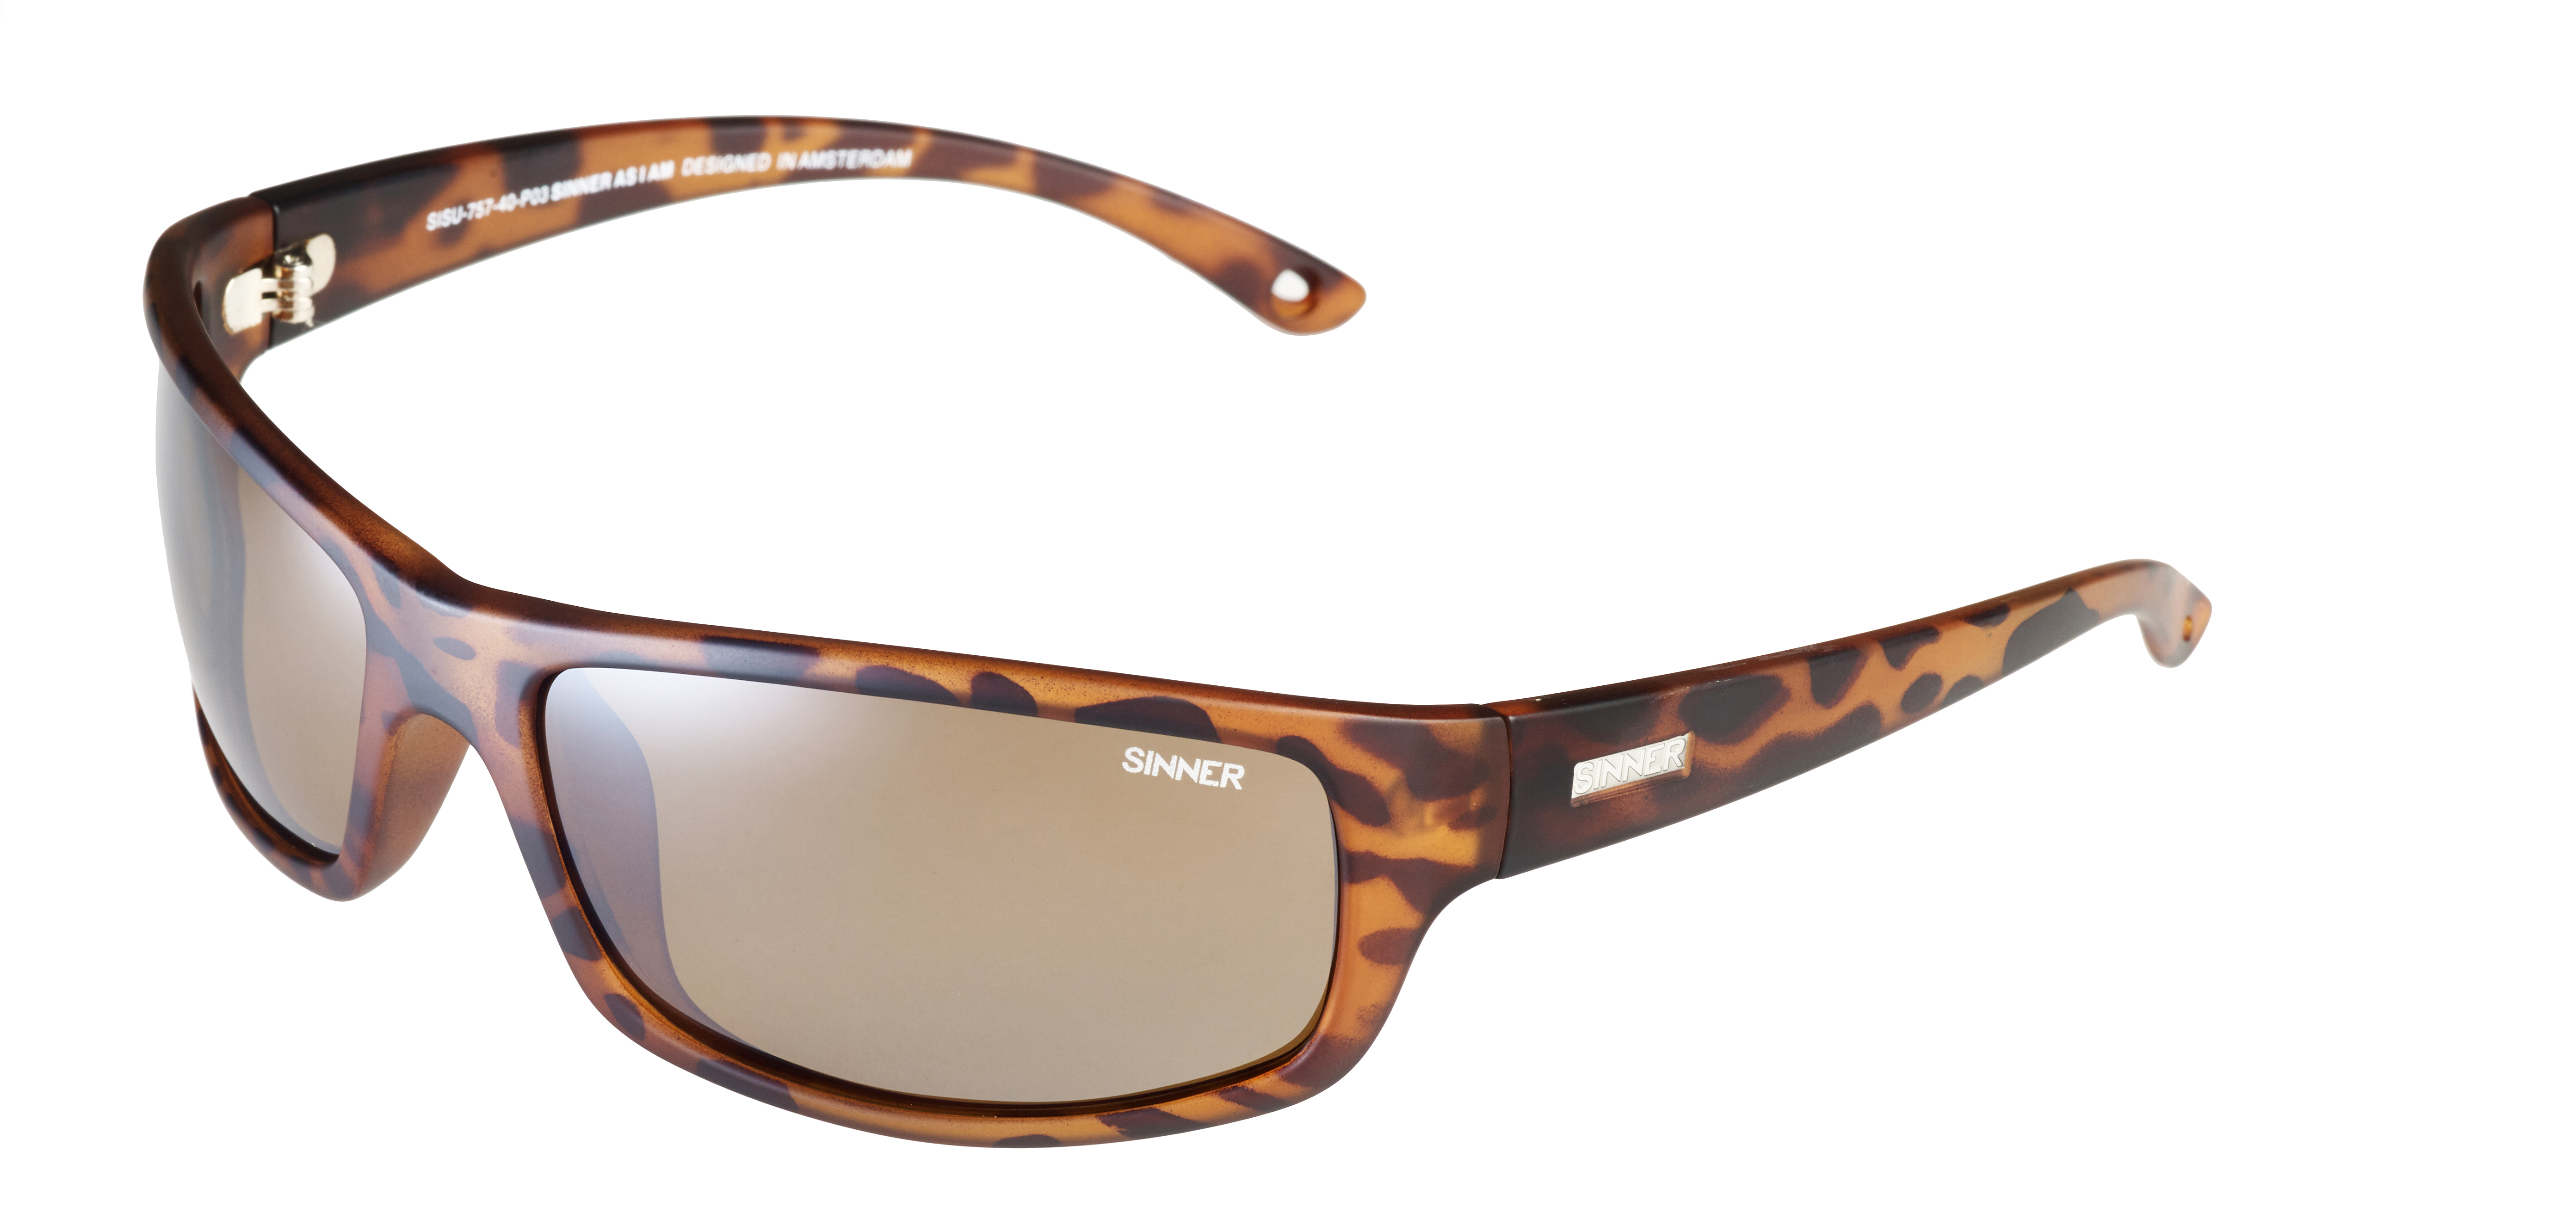 ddf1bdbed51 Sinner Monarch Matte Tortoise Sintec Brown FL Mirror Polarized Wrap  Sunglasses - Hyped Sports